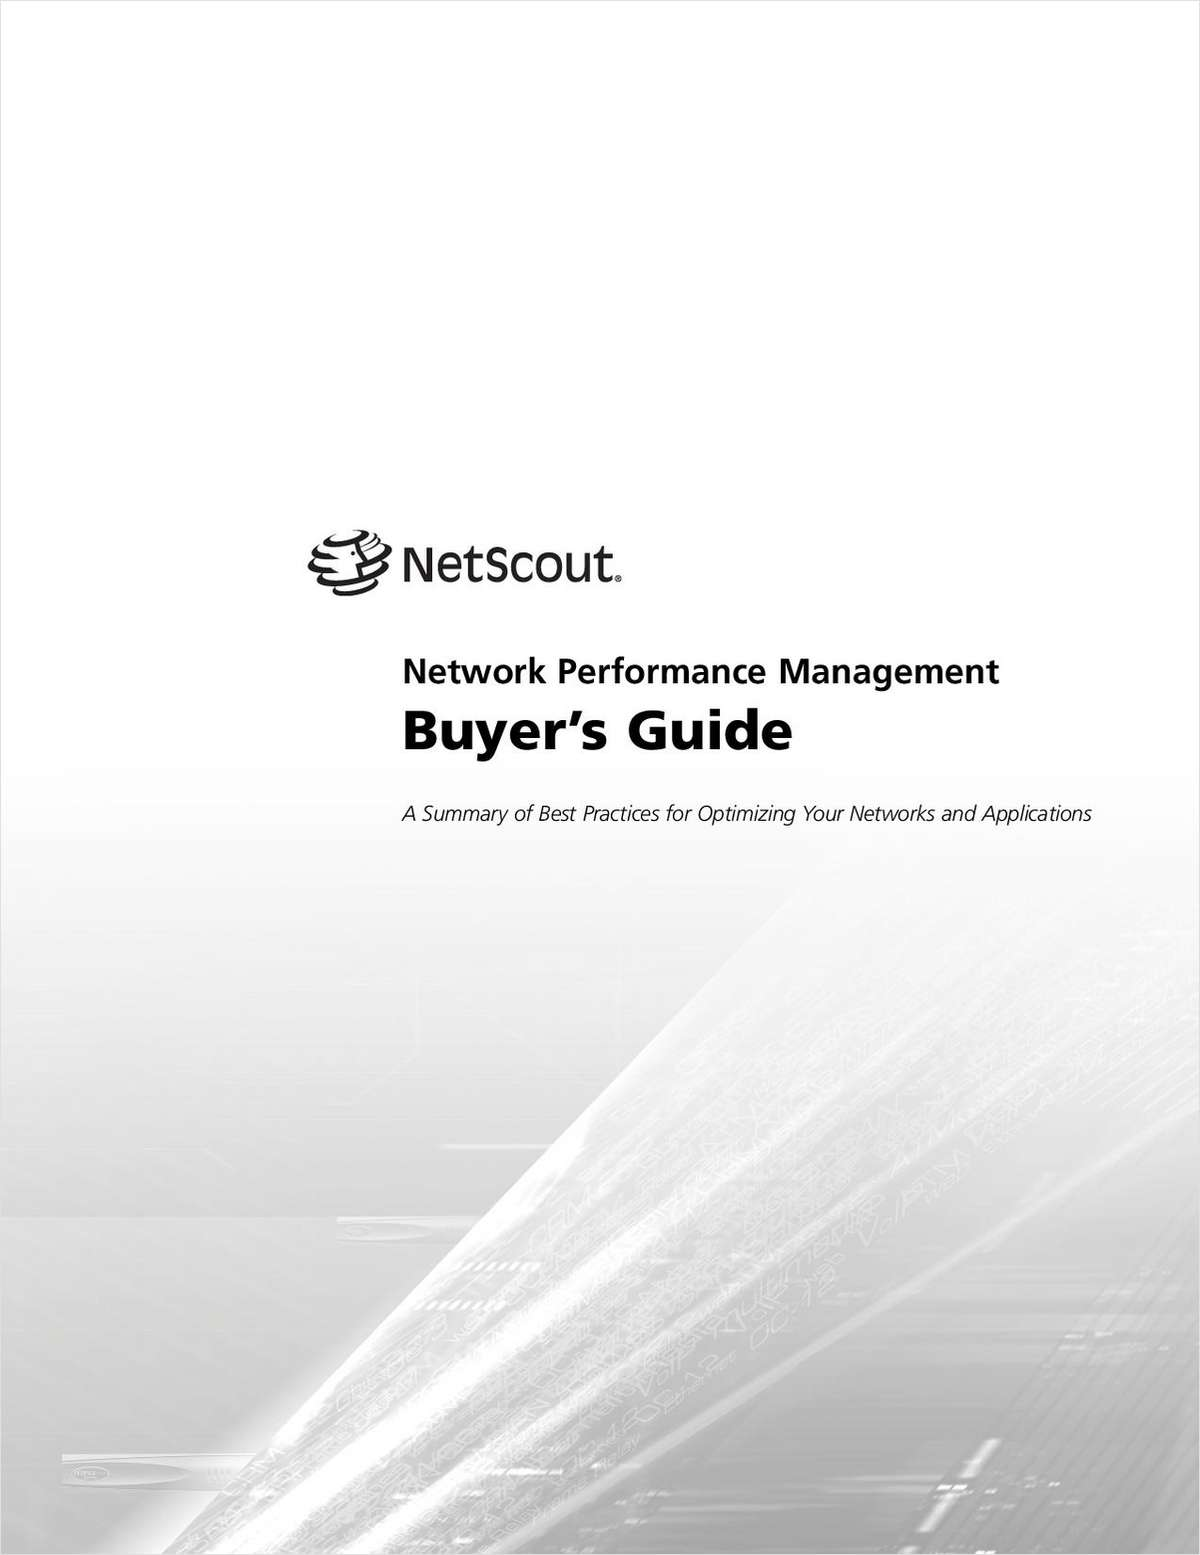 Application and Network Performance Management Buyer's Guide